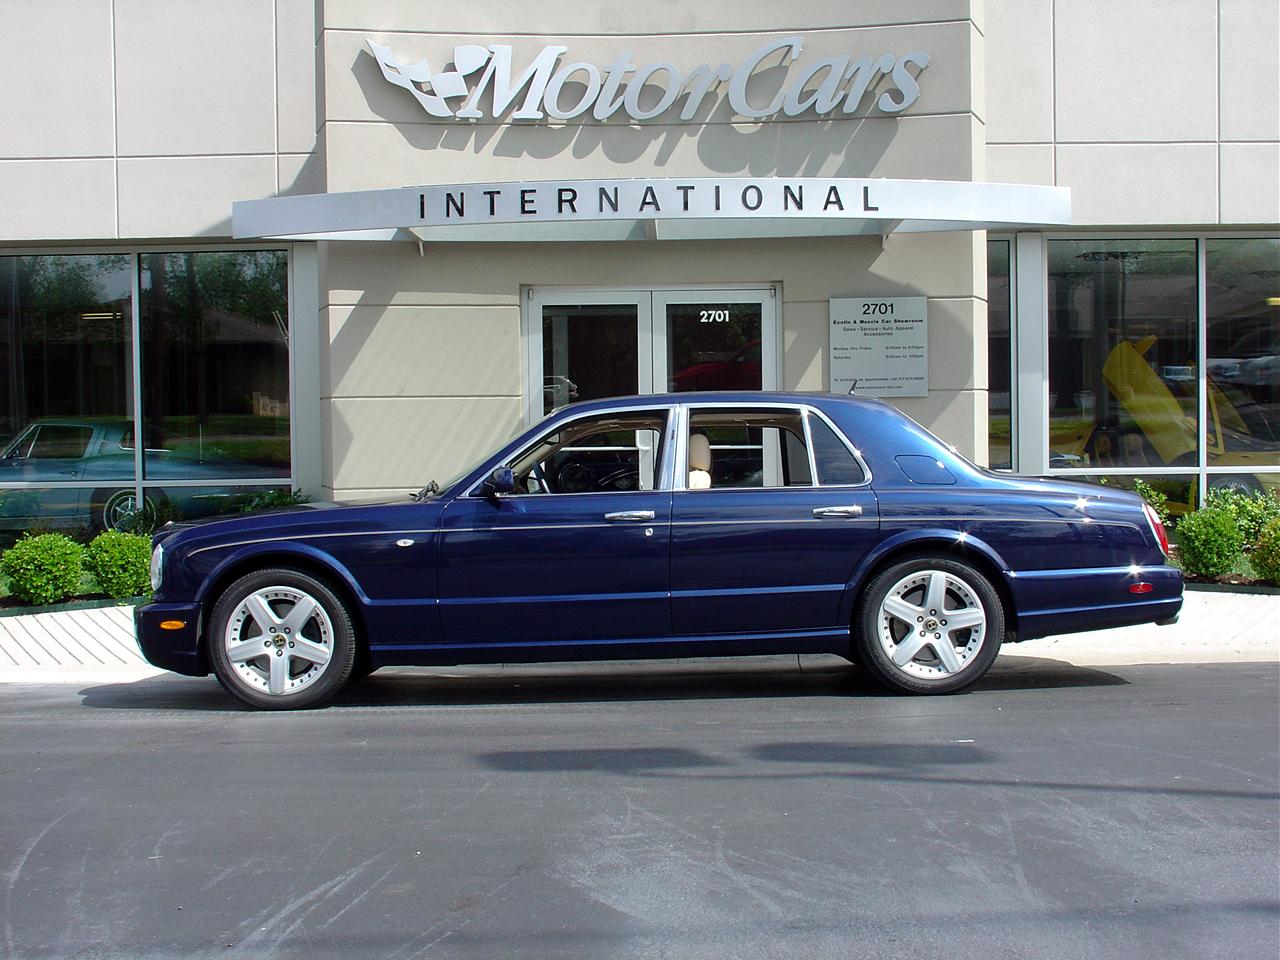 bentley arnage i 2002 pics #3